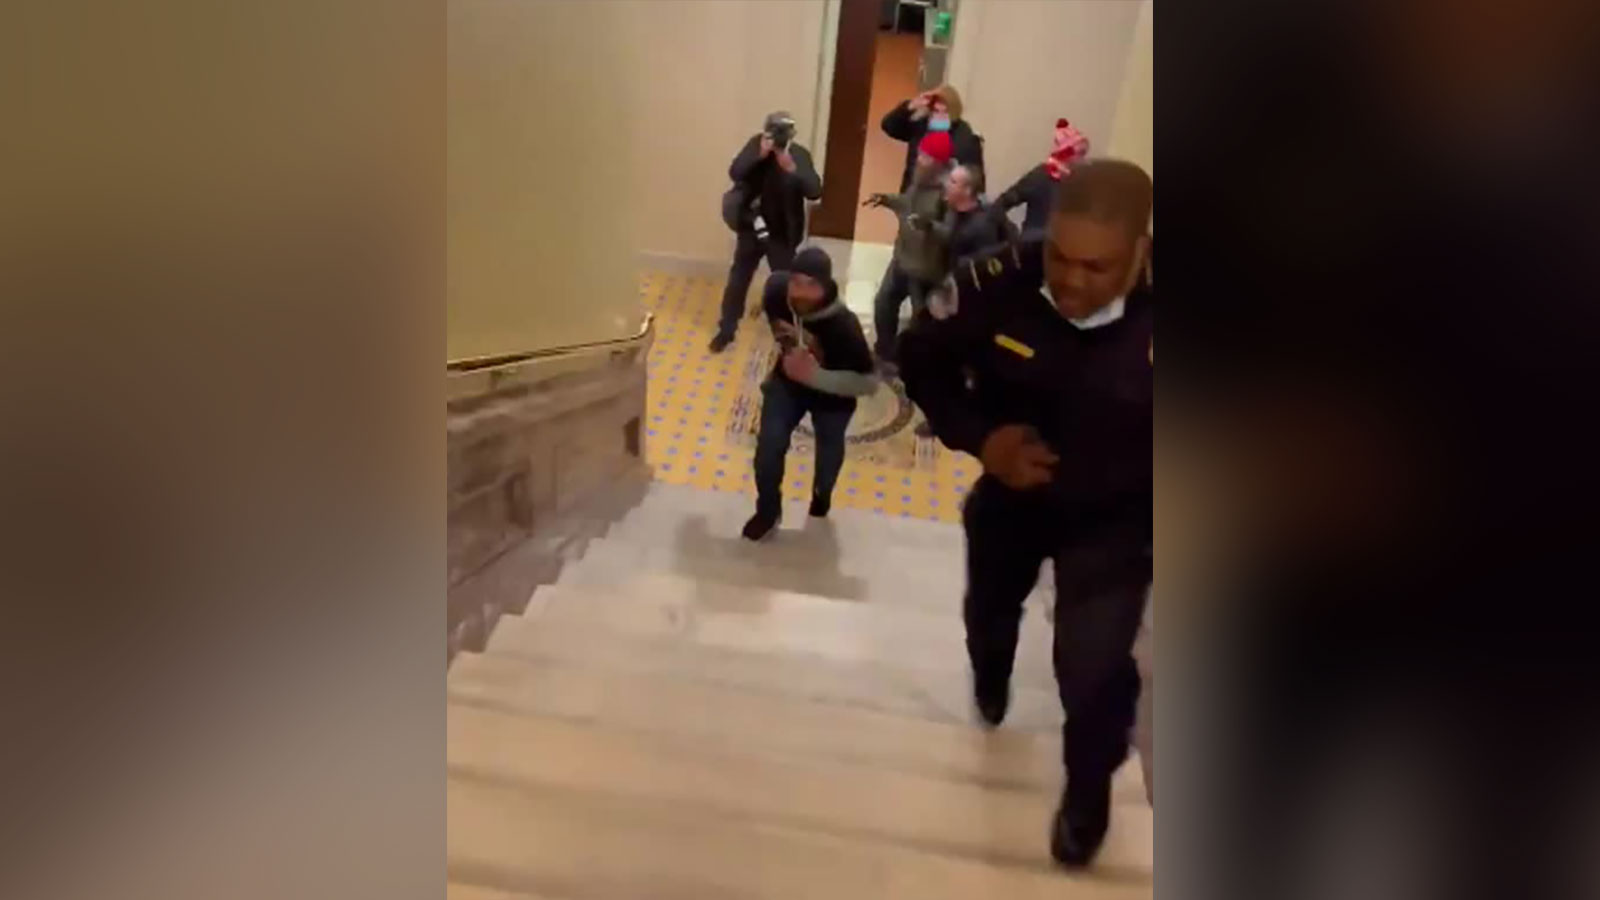 Lawmakers want to award a Congressional Gold Medal to the Capitol Police officer who lured rioters away from the Senate chambers